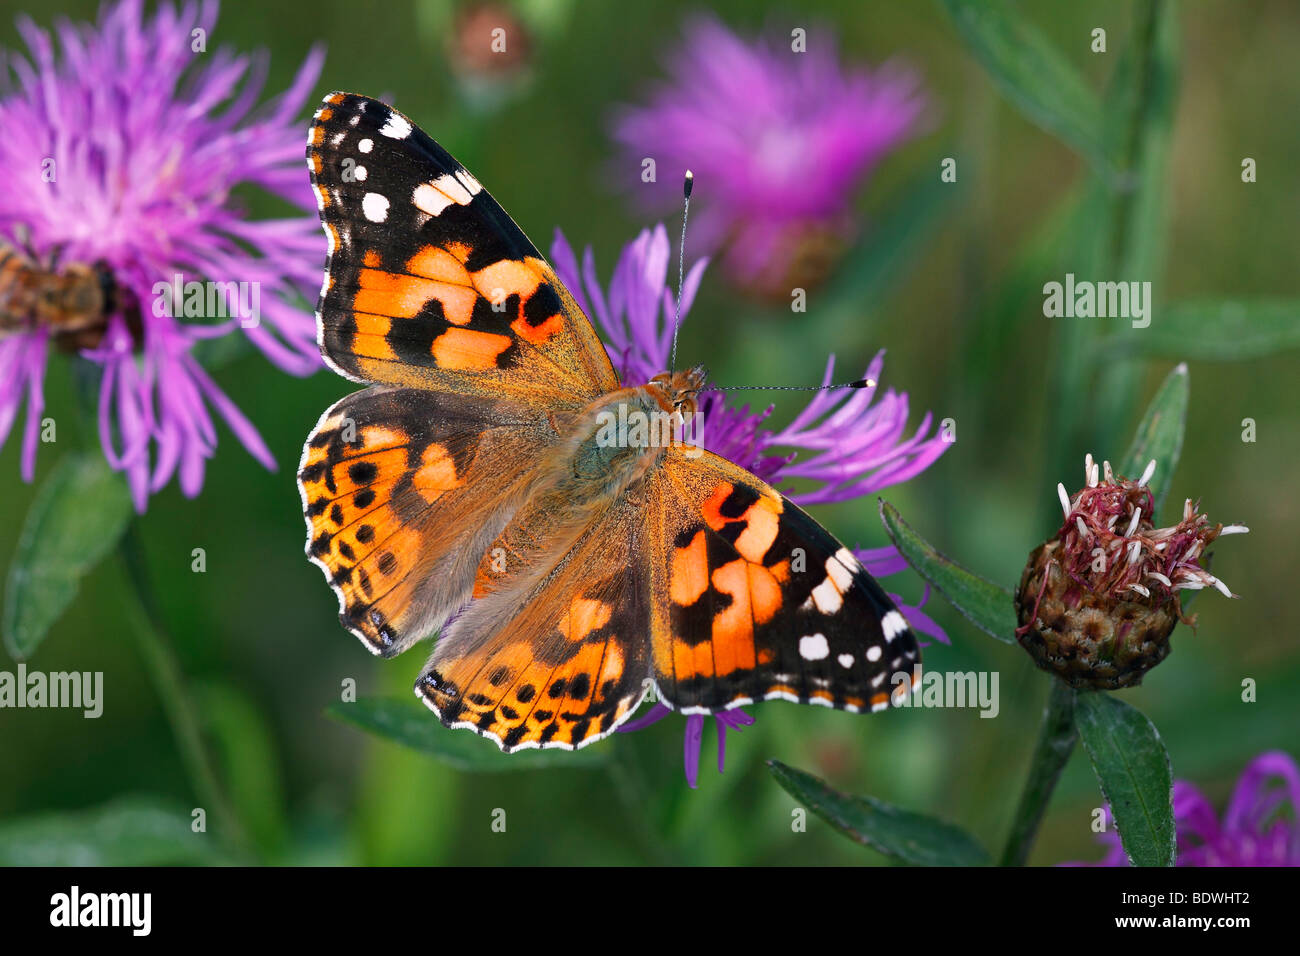 Thistle Butterfly, Painted Lady (Vanessa cardui, Cynthia cardui) sitting on a flowering Brown Knapweed, Brownray Stock Photo